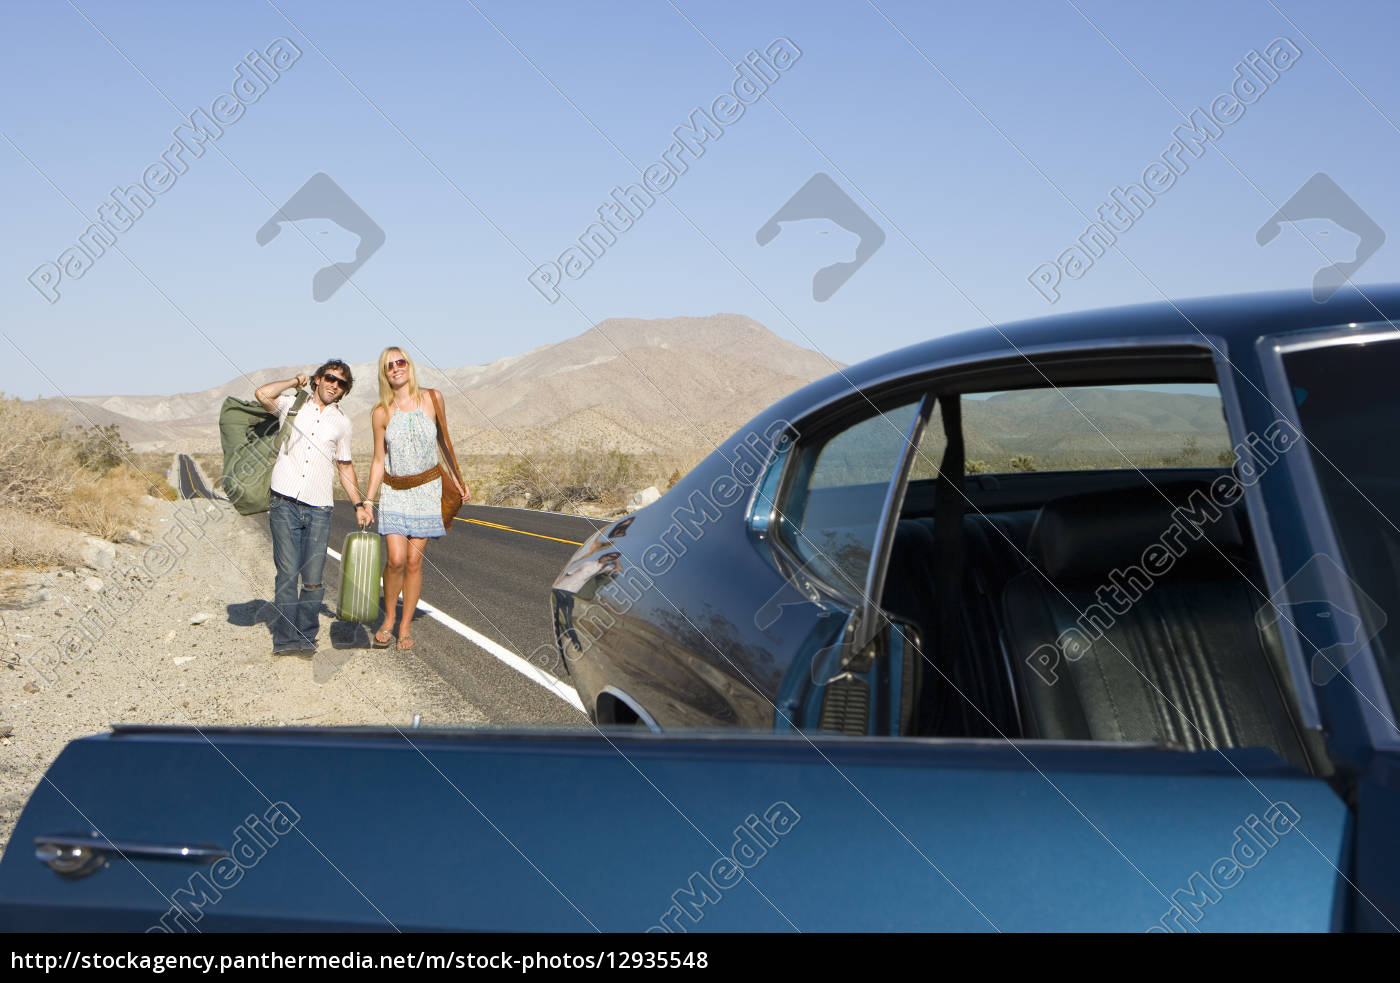 young, couple, hitchhiking, on, desert, road, - 12935548